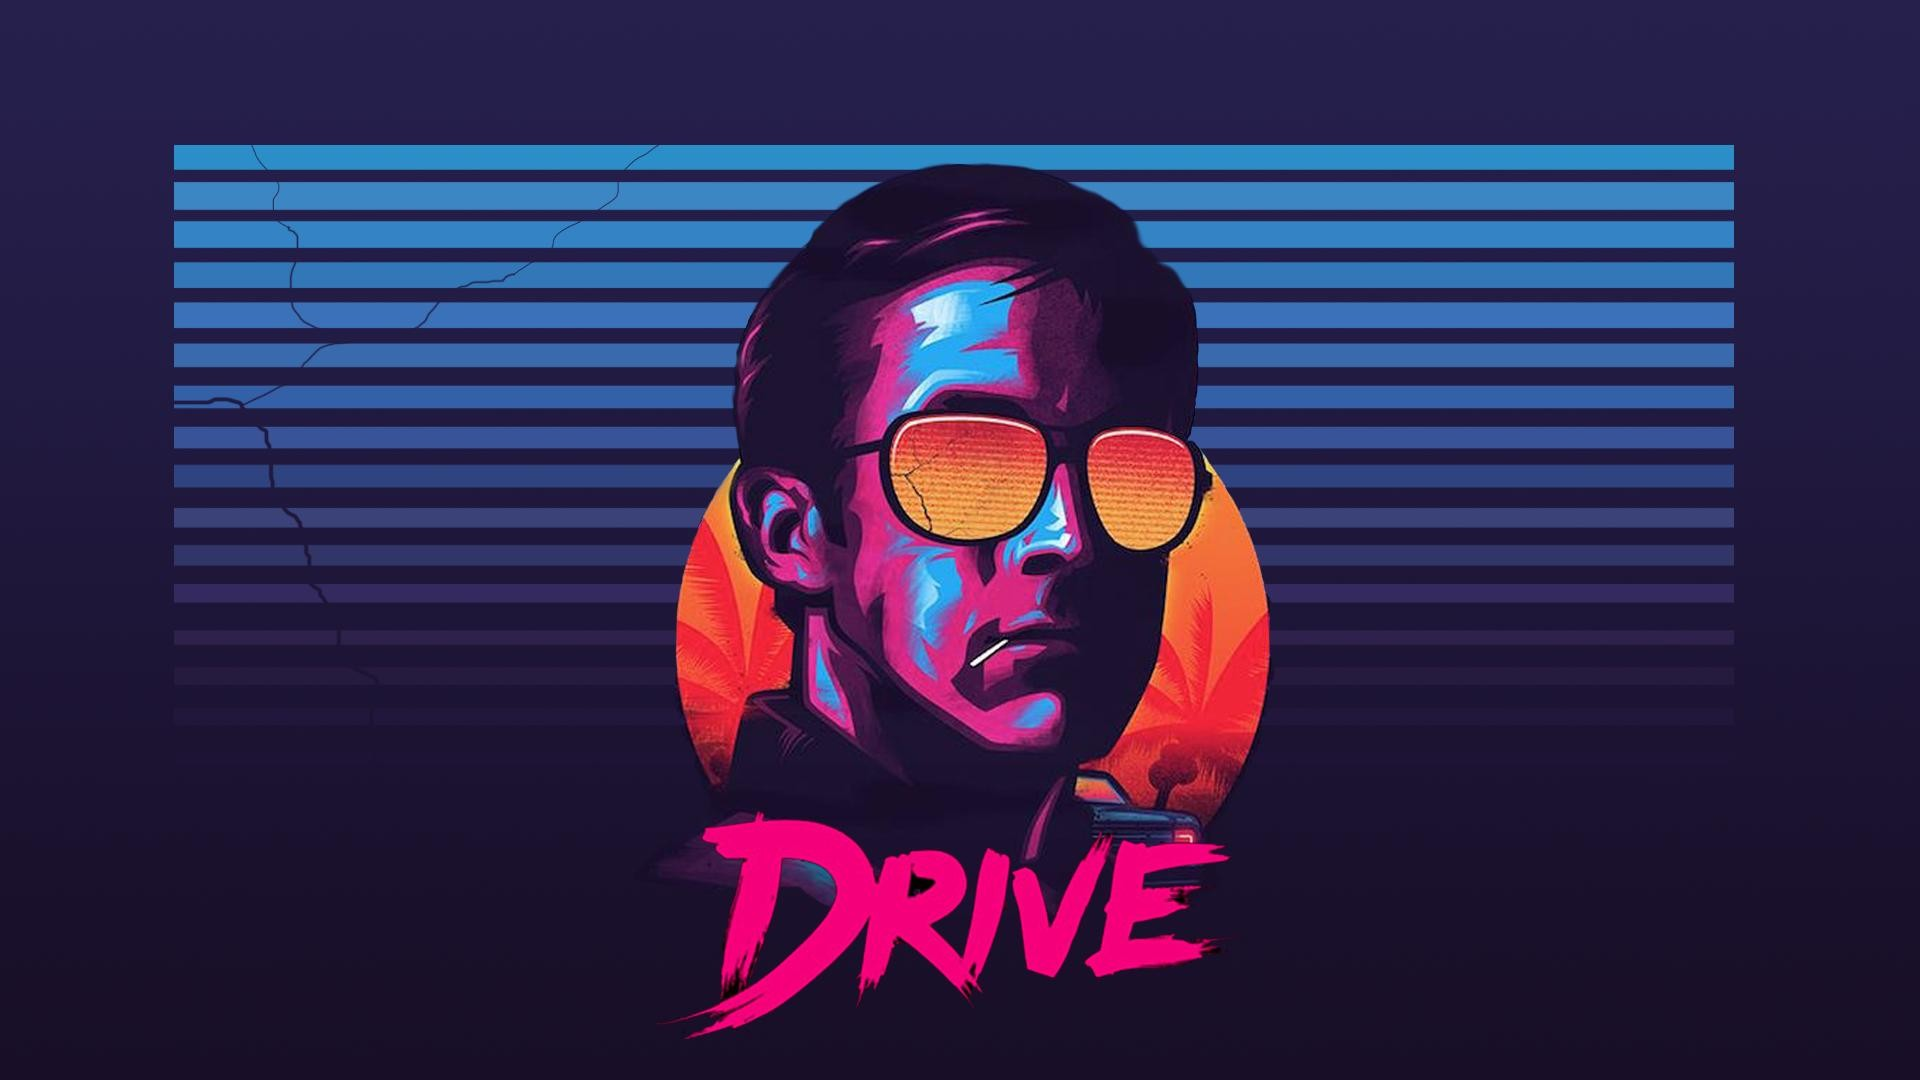 Hotline Miami Car Wallpaper Drive Wallpaper 183 ①